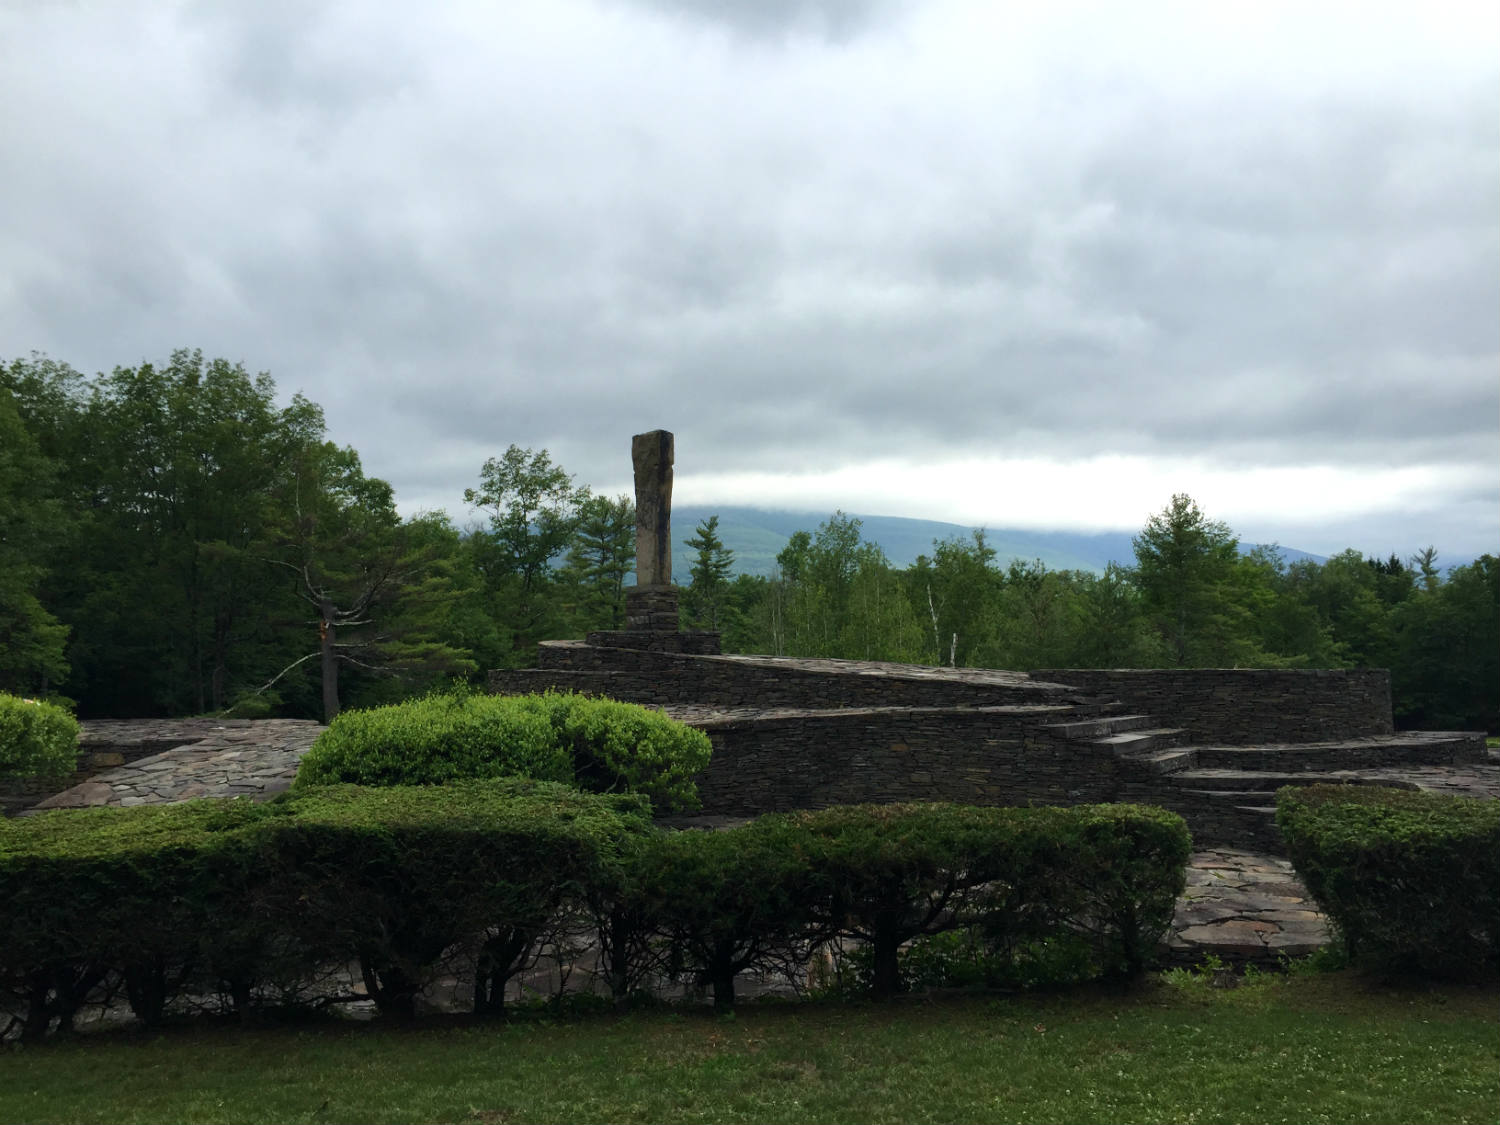 The Flame and Overlook Mountain at Opus 40 in Saugerties, New York